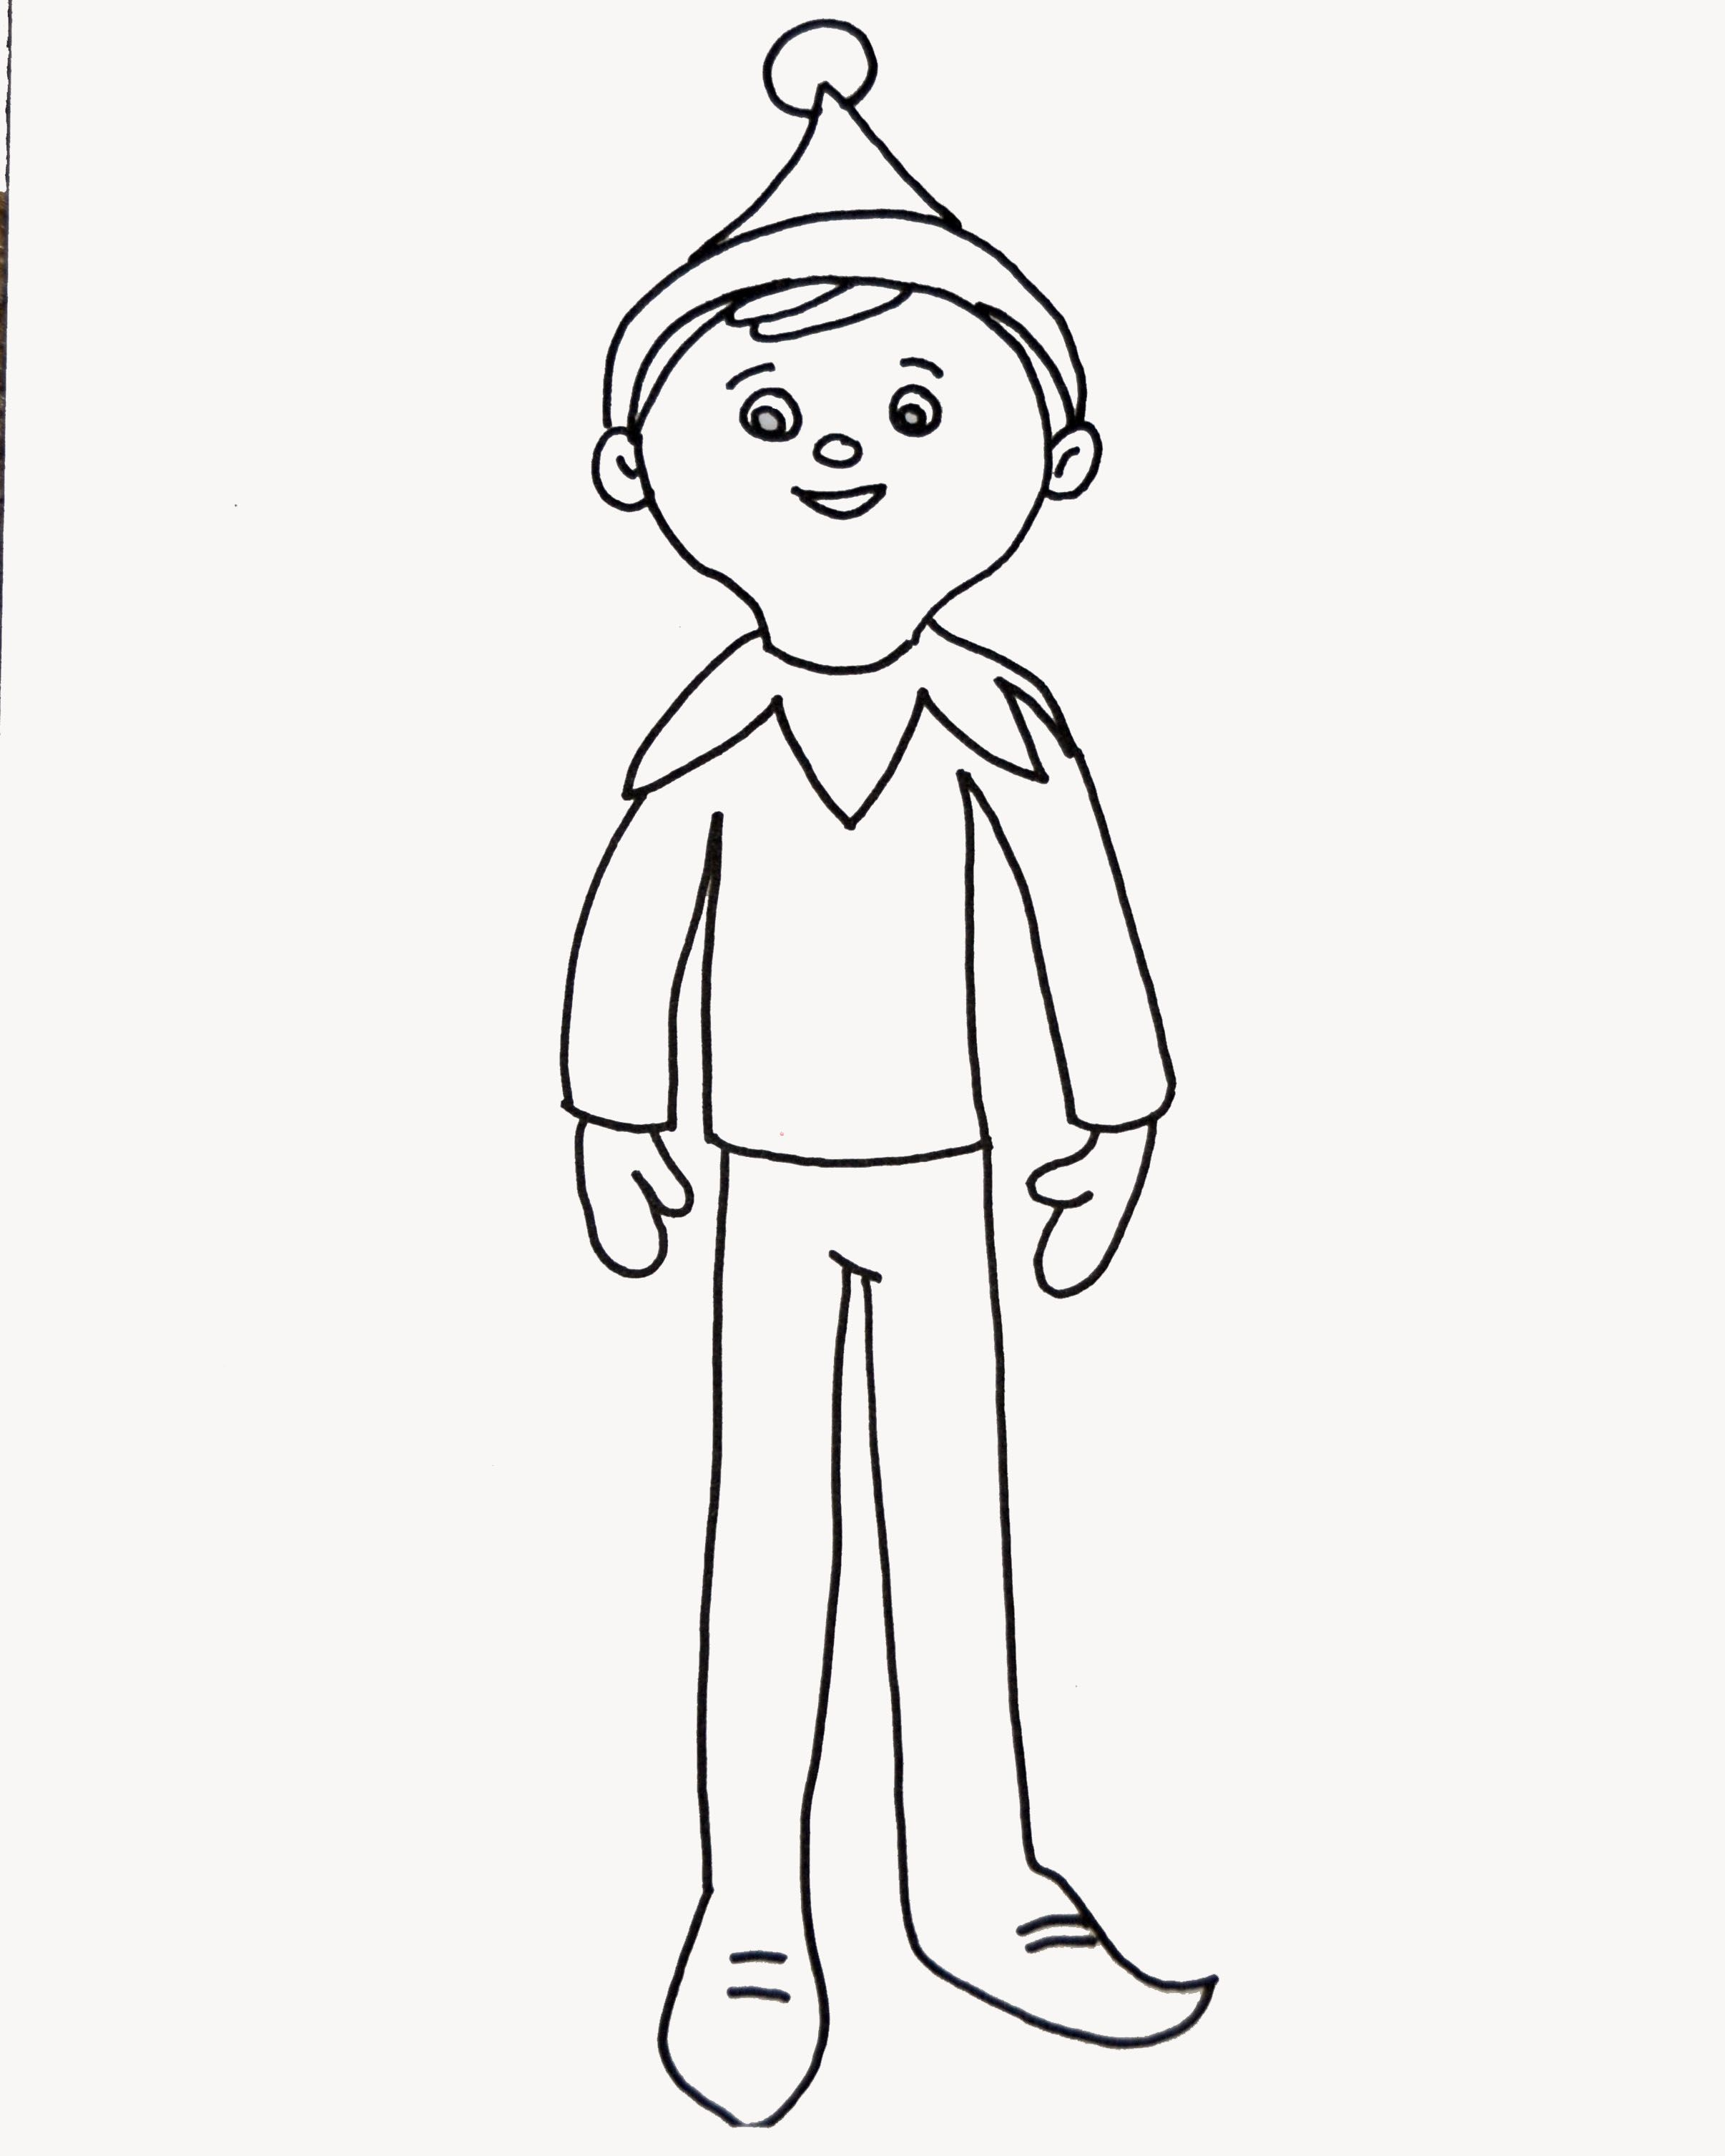 14++ Christmas girl elf coloring pages ideas in 2021